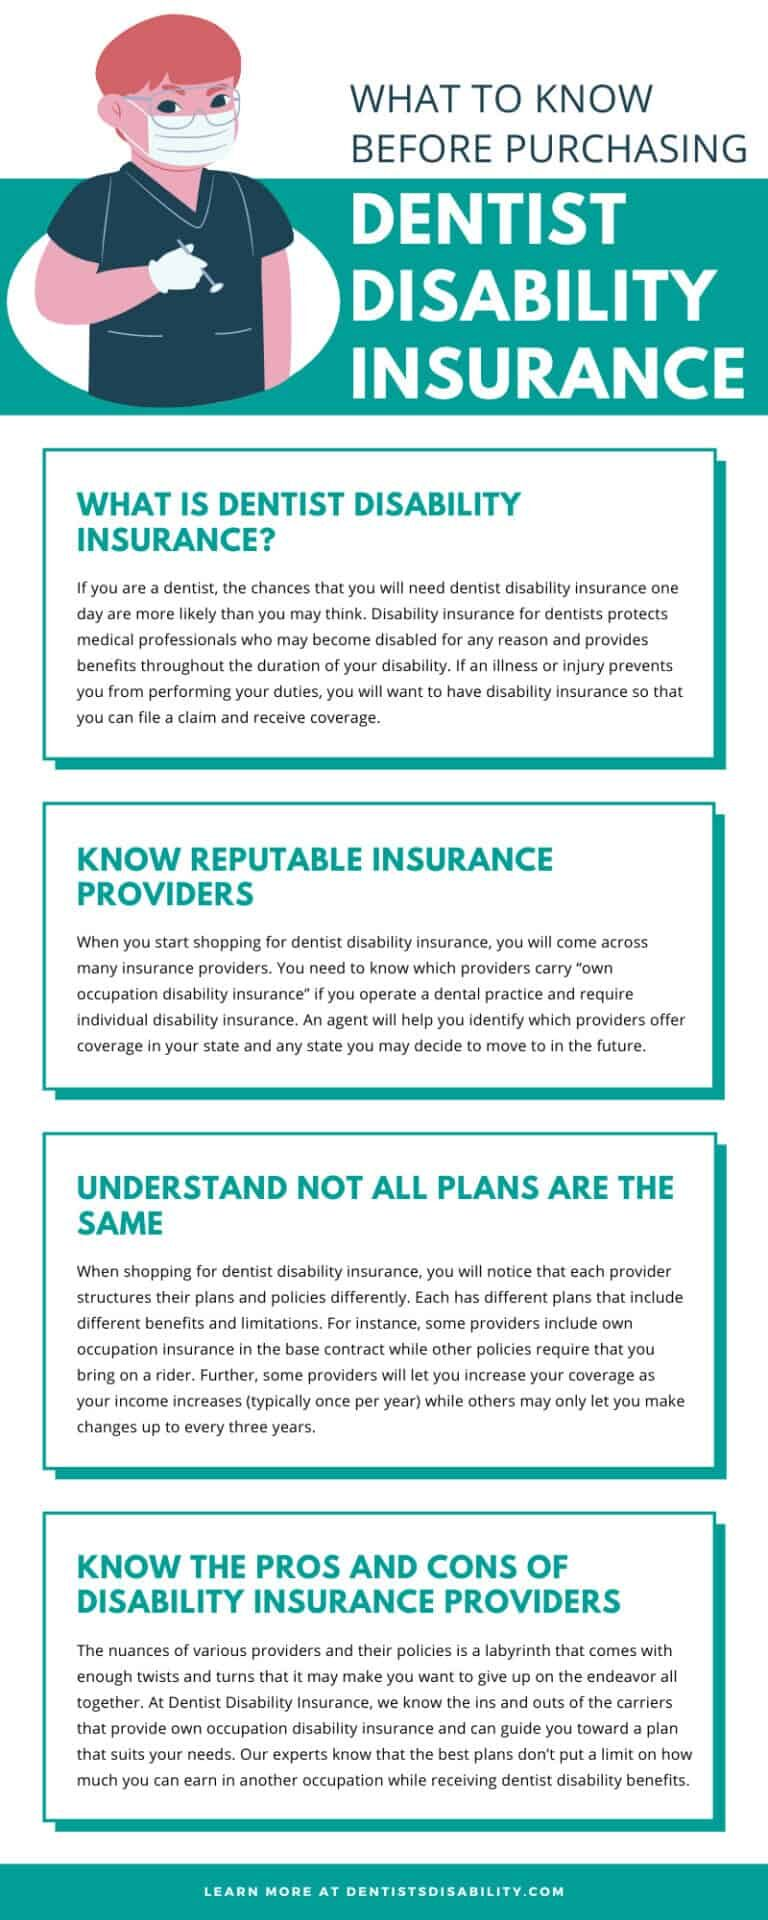 What To Know Before Purchasing Dentist Disability Insurance